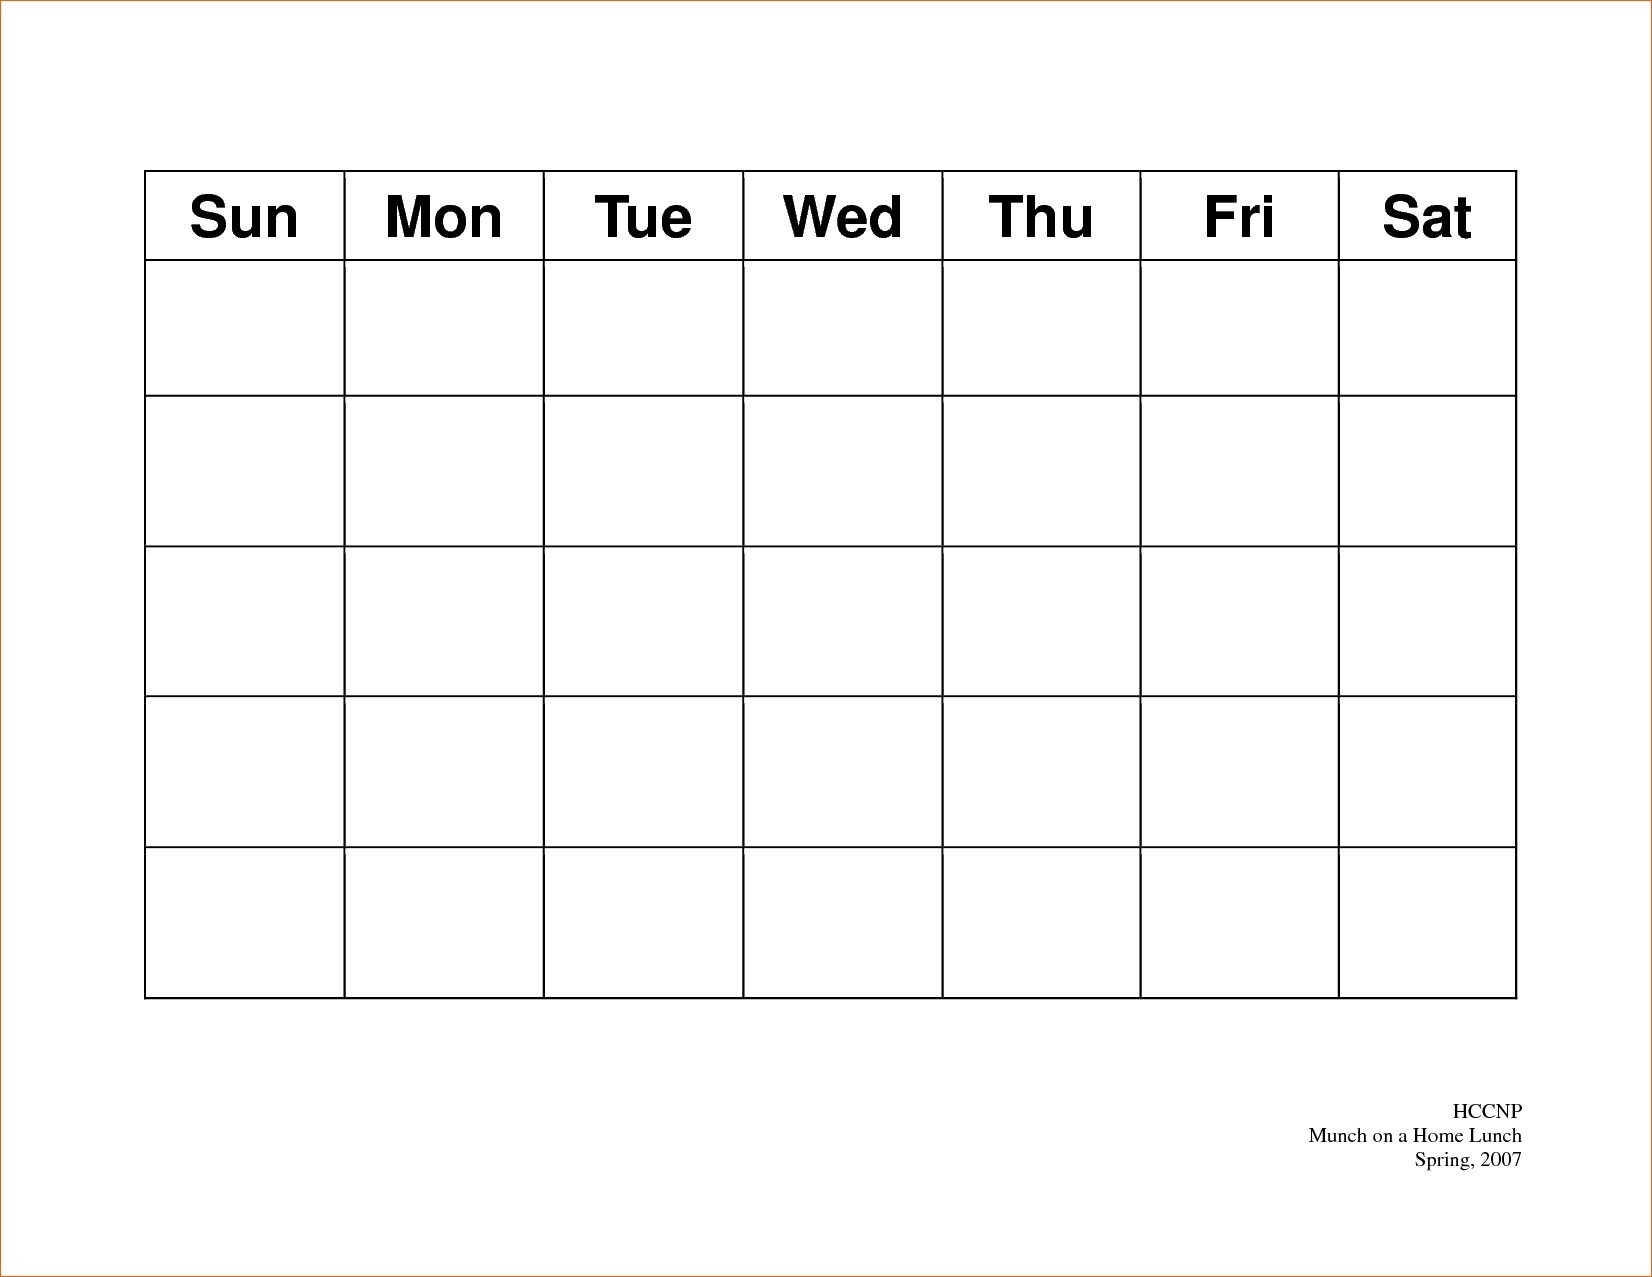 Calendar 5 Day Weekly Calendar Template On 5 Week Calendar Template intended for Weekly Calendar Template 5 Days